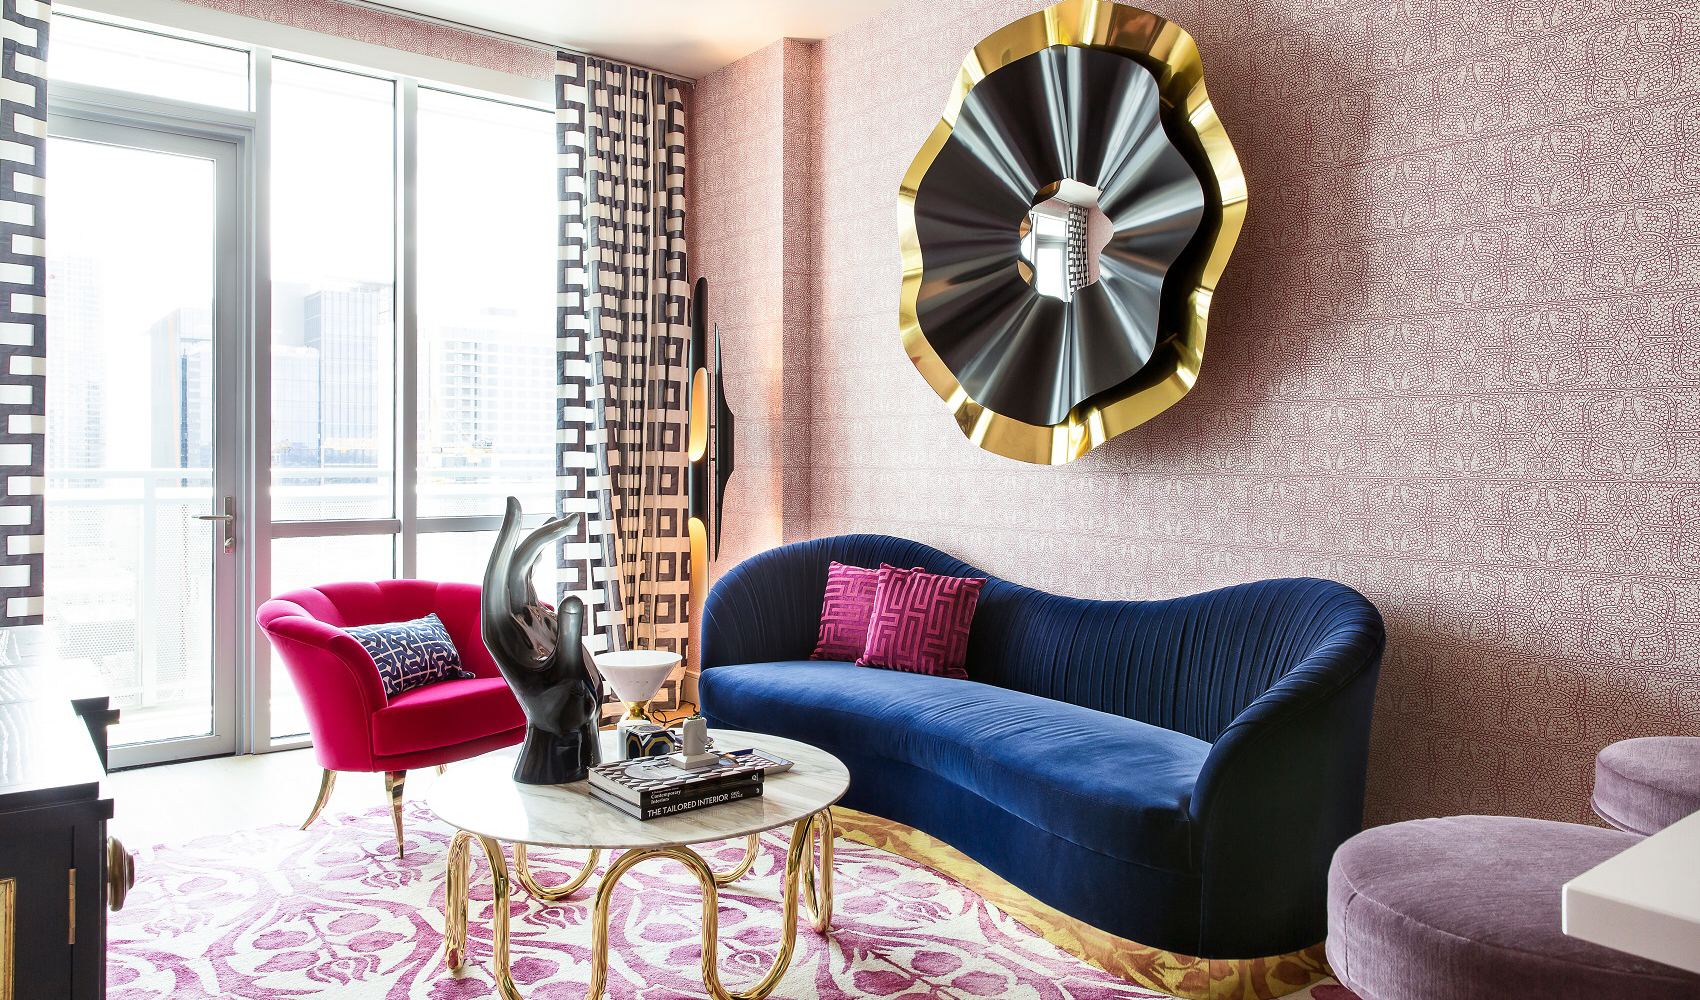 Living Room design featuring wallpaper in a pink, geometric vintage design